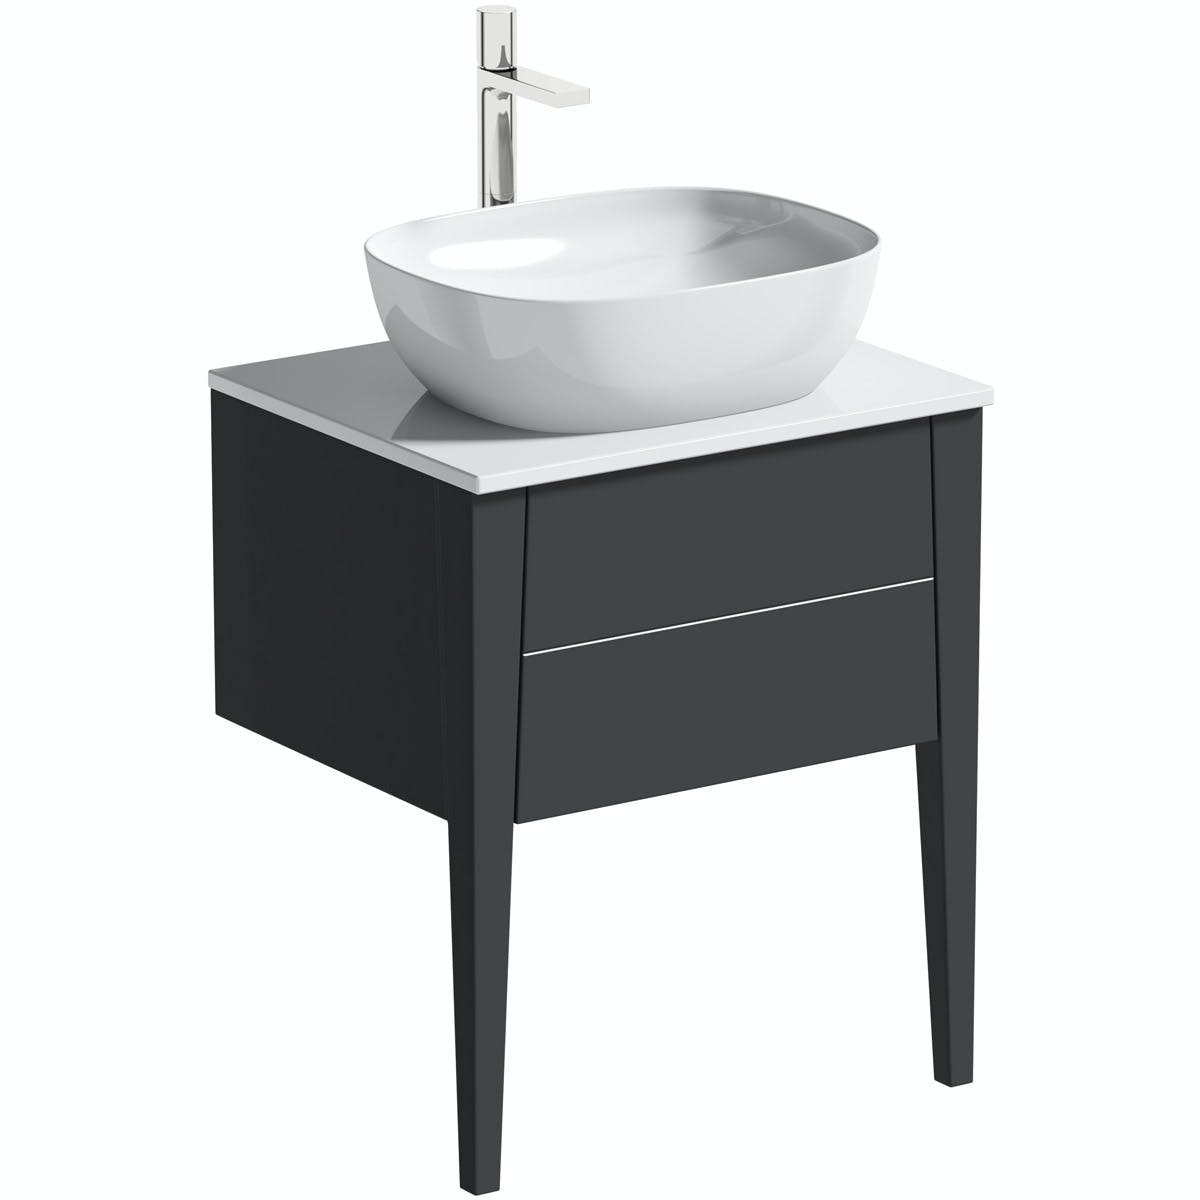 Mode Hale Grey Stone Matt Wall Hung Vanity Unit With Ceramic Countertop And Basin 600mm